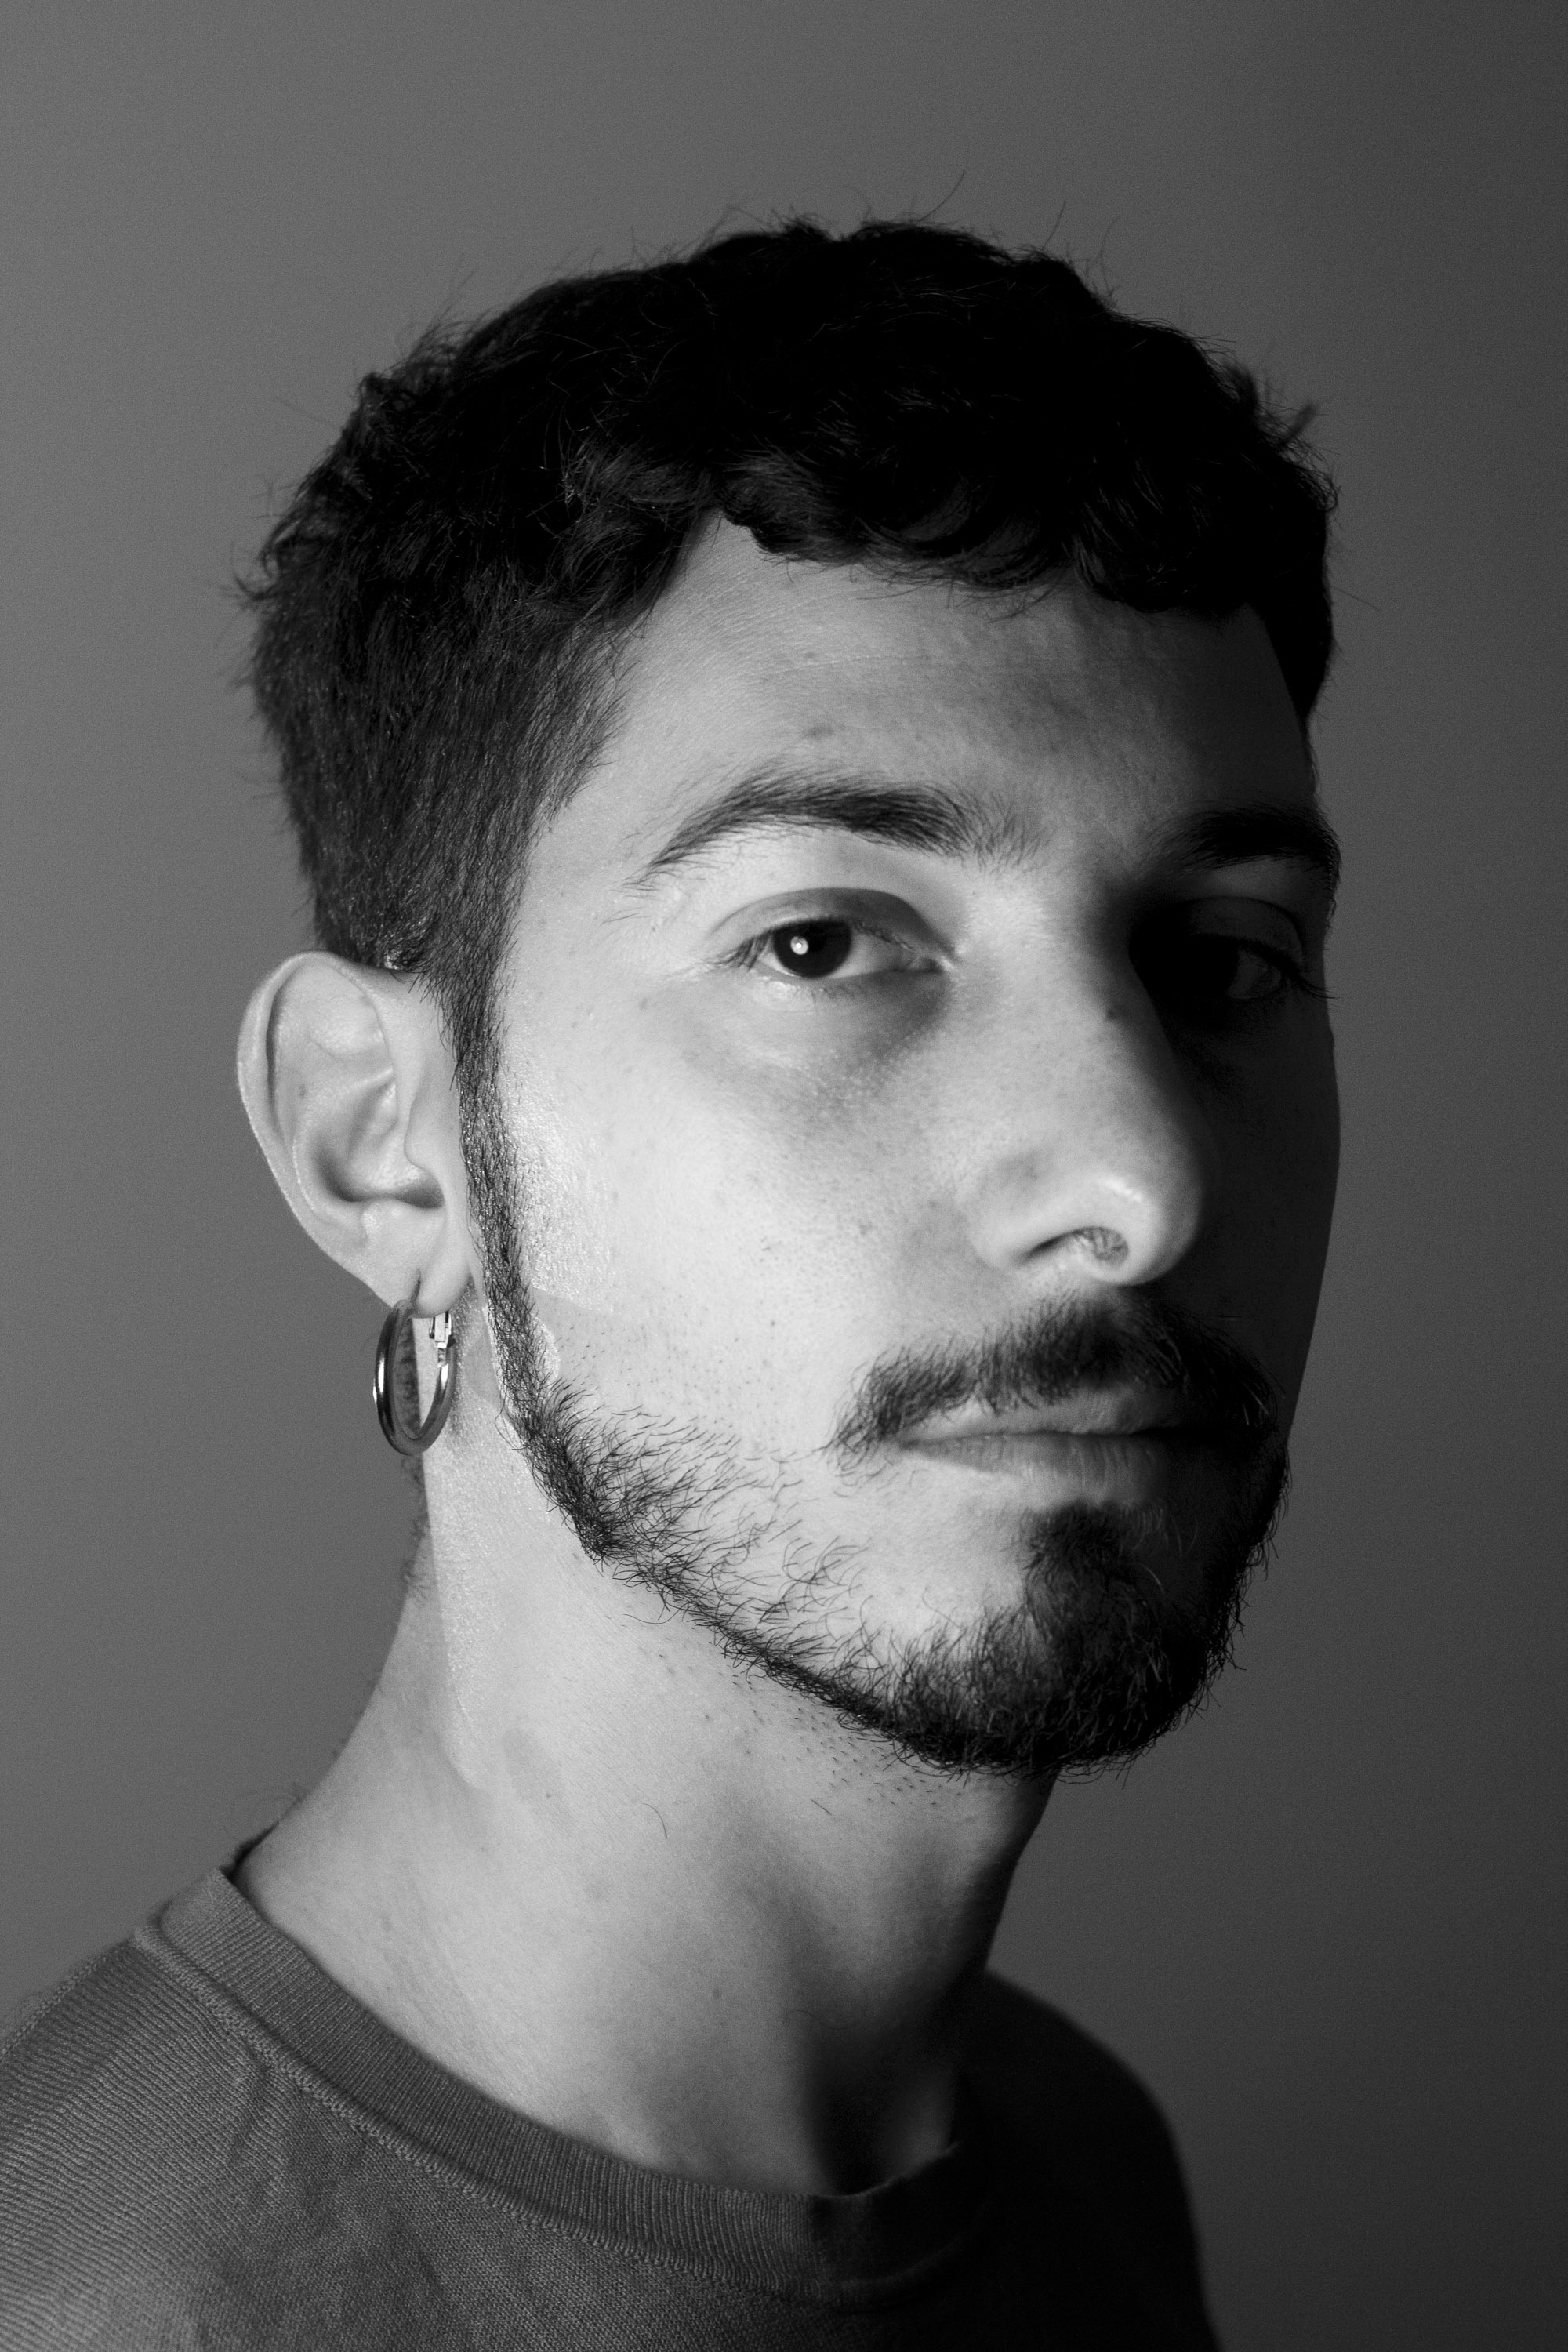 The black and white photo shows Celin an individual with short brown hair and beard, wearing a circle earring